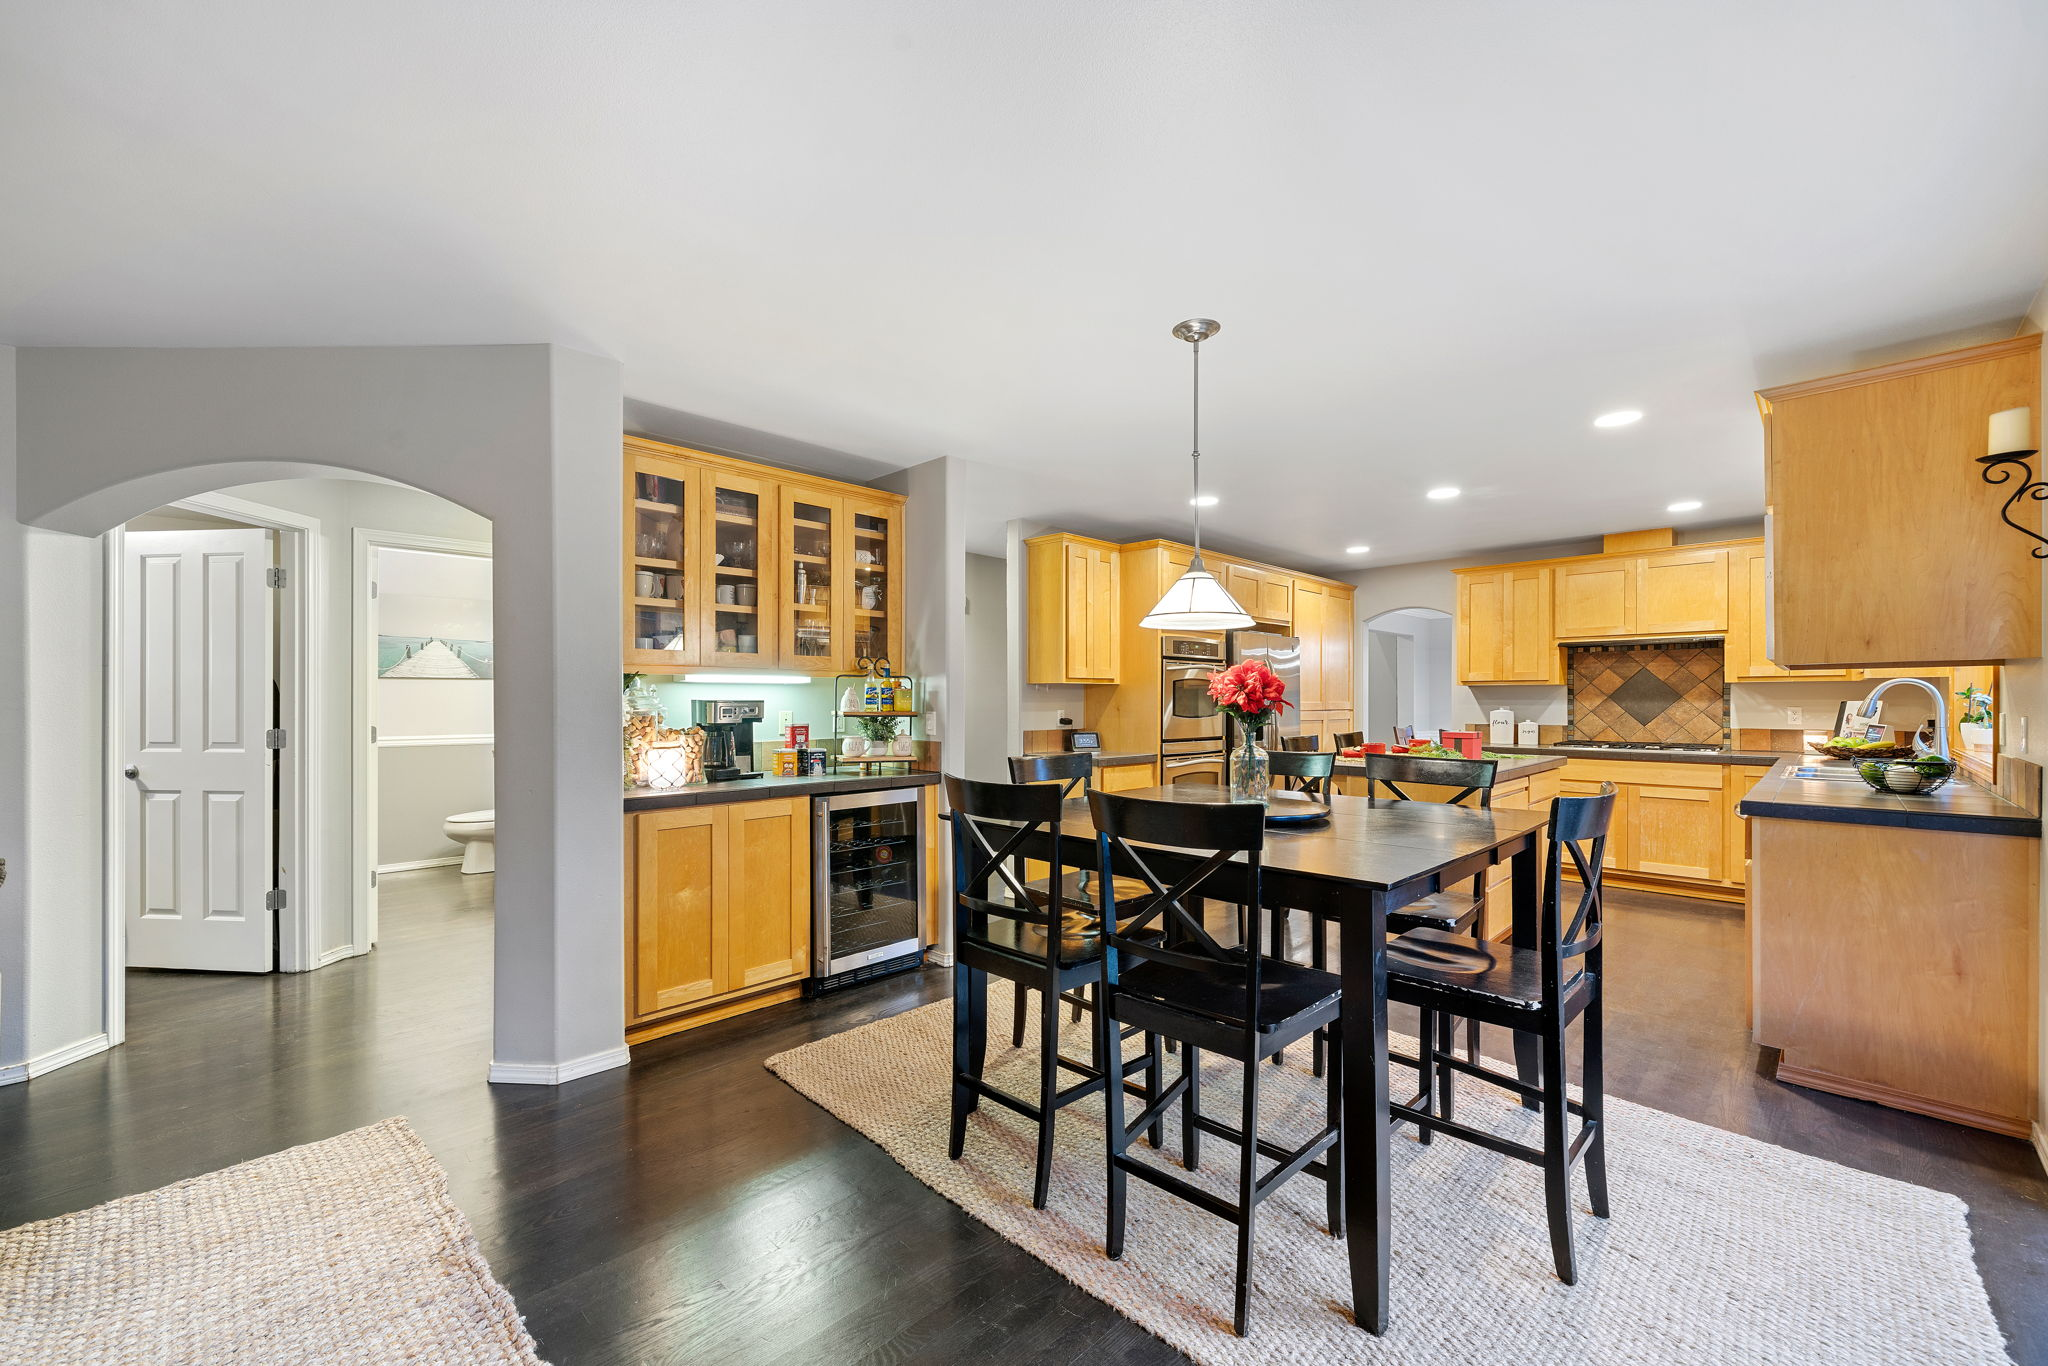 Great butlers pantry or bar with built in wine fridge!